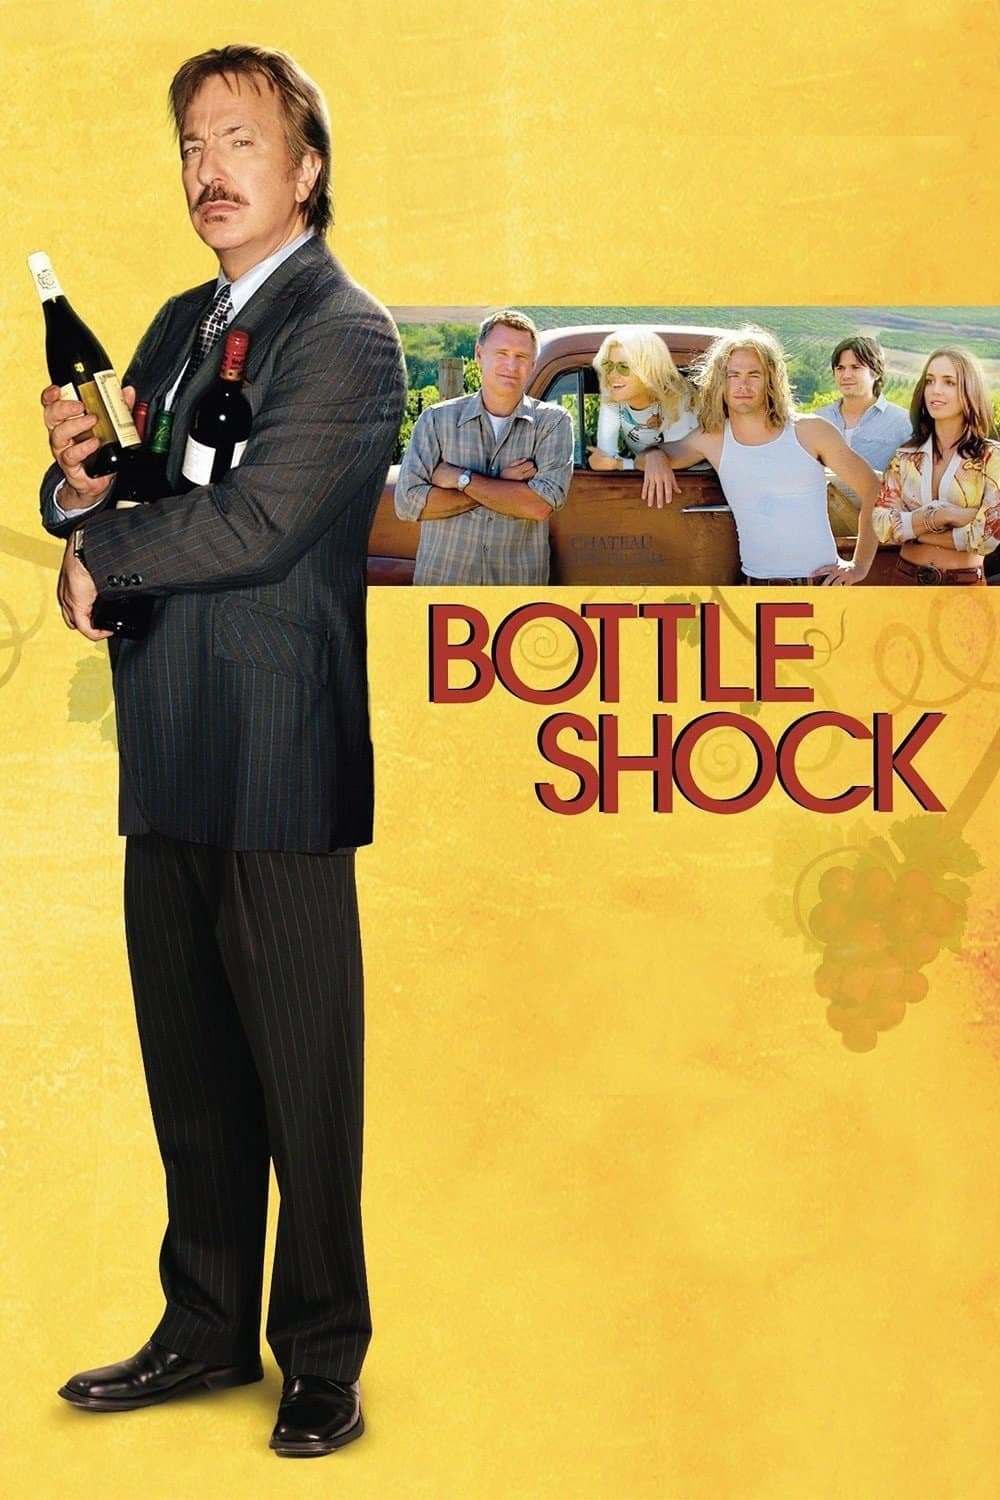 Bottle Shock, 2008